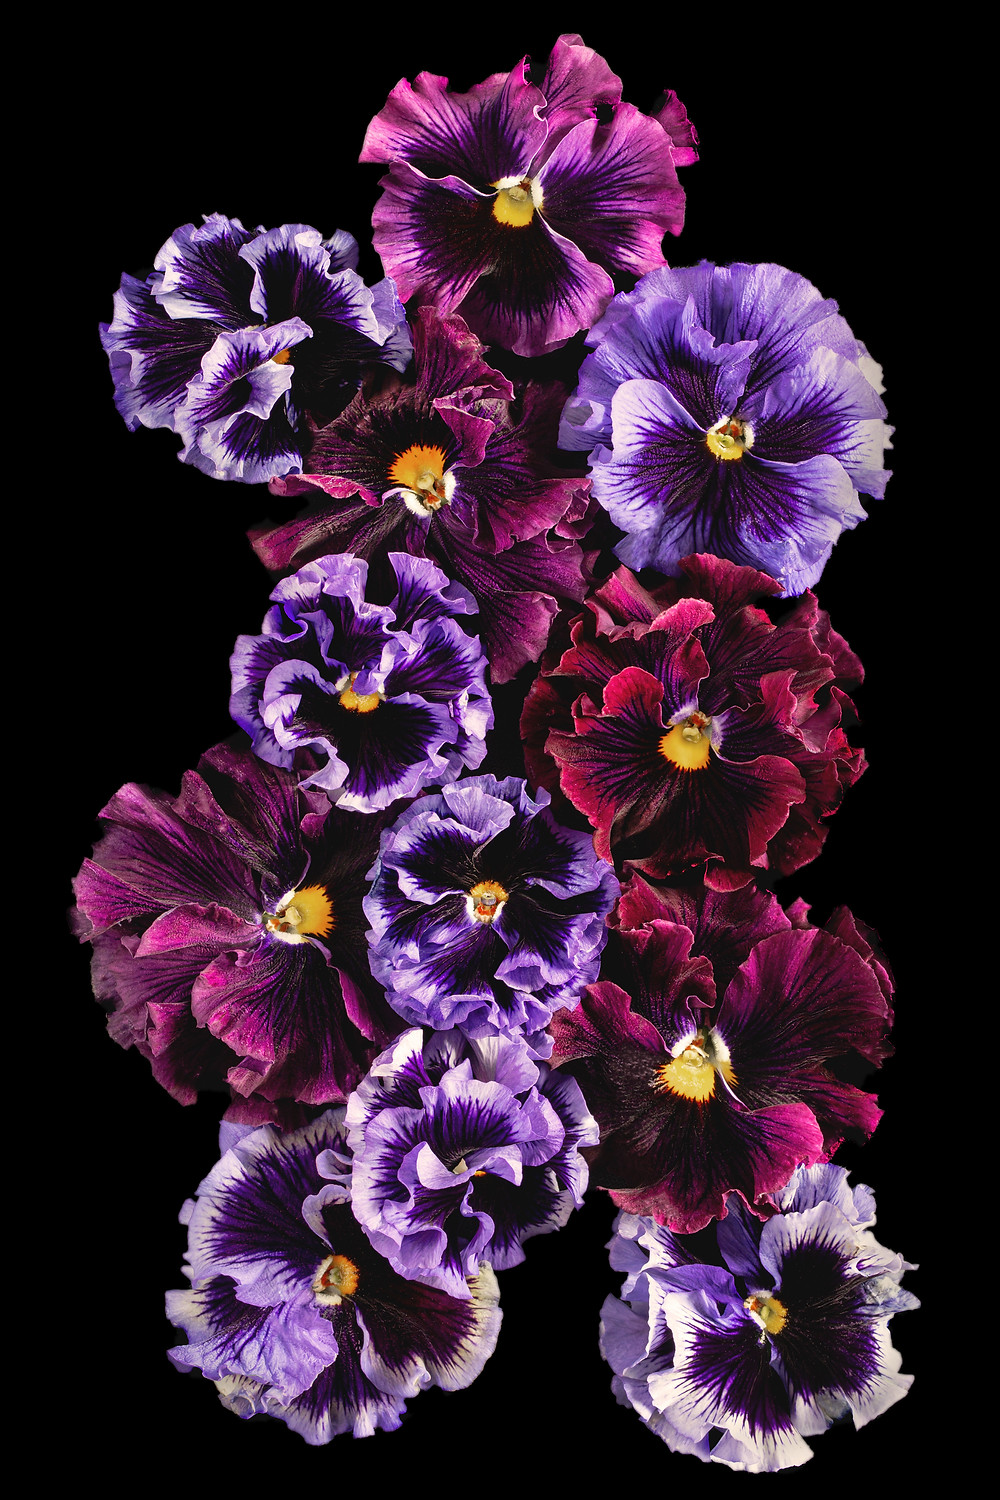 floral photography with ruffled pansies